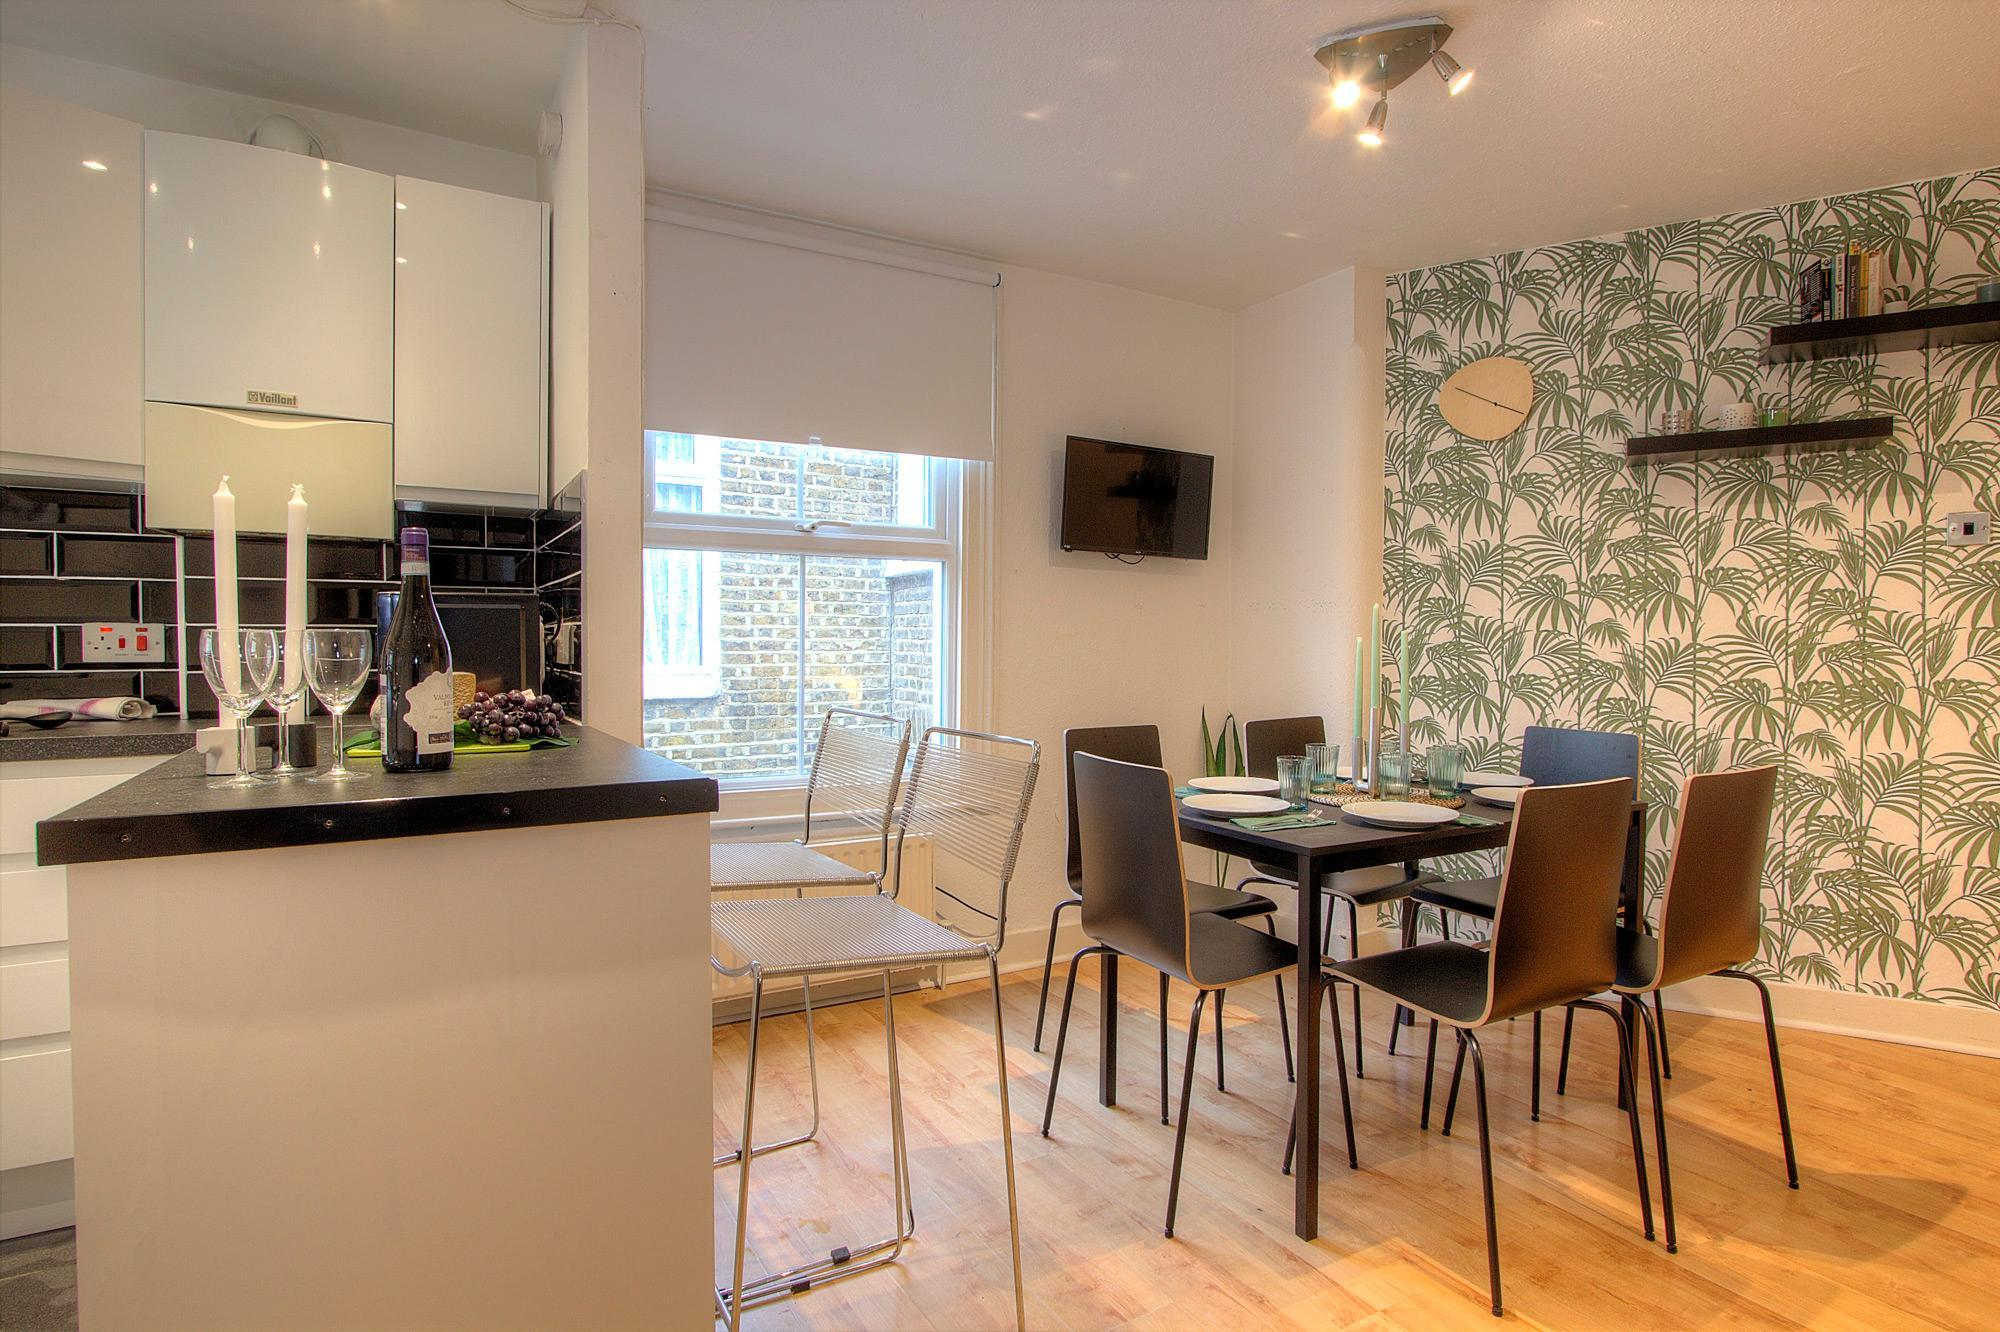 3 Bedroom Apartment in London #QP